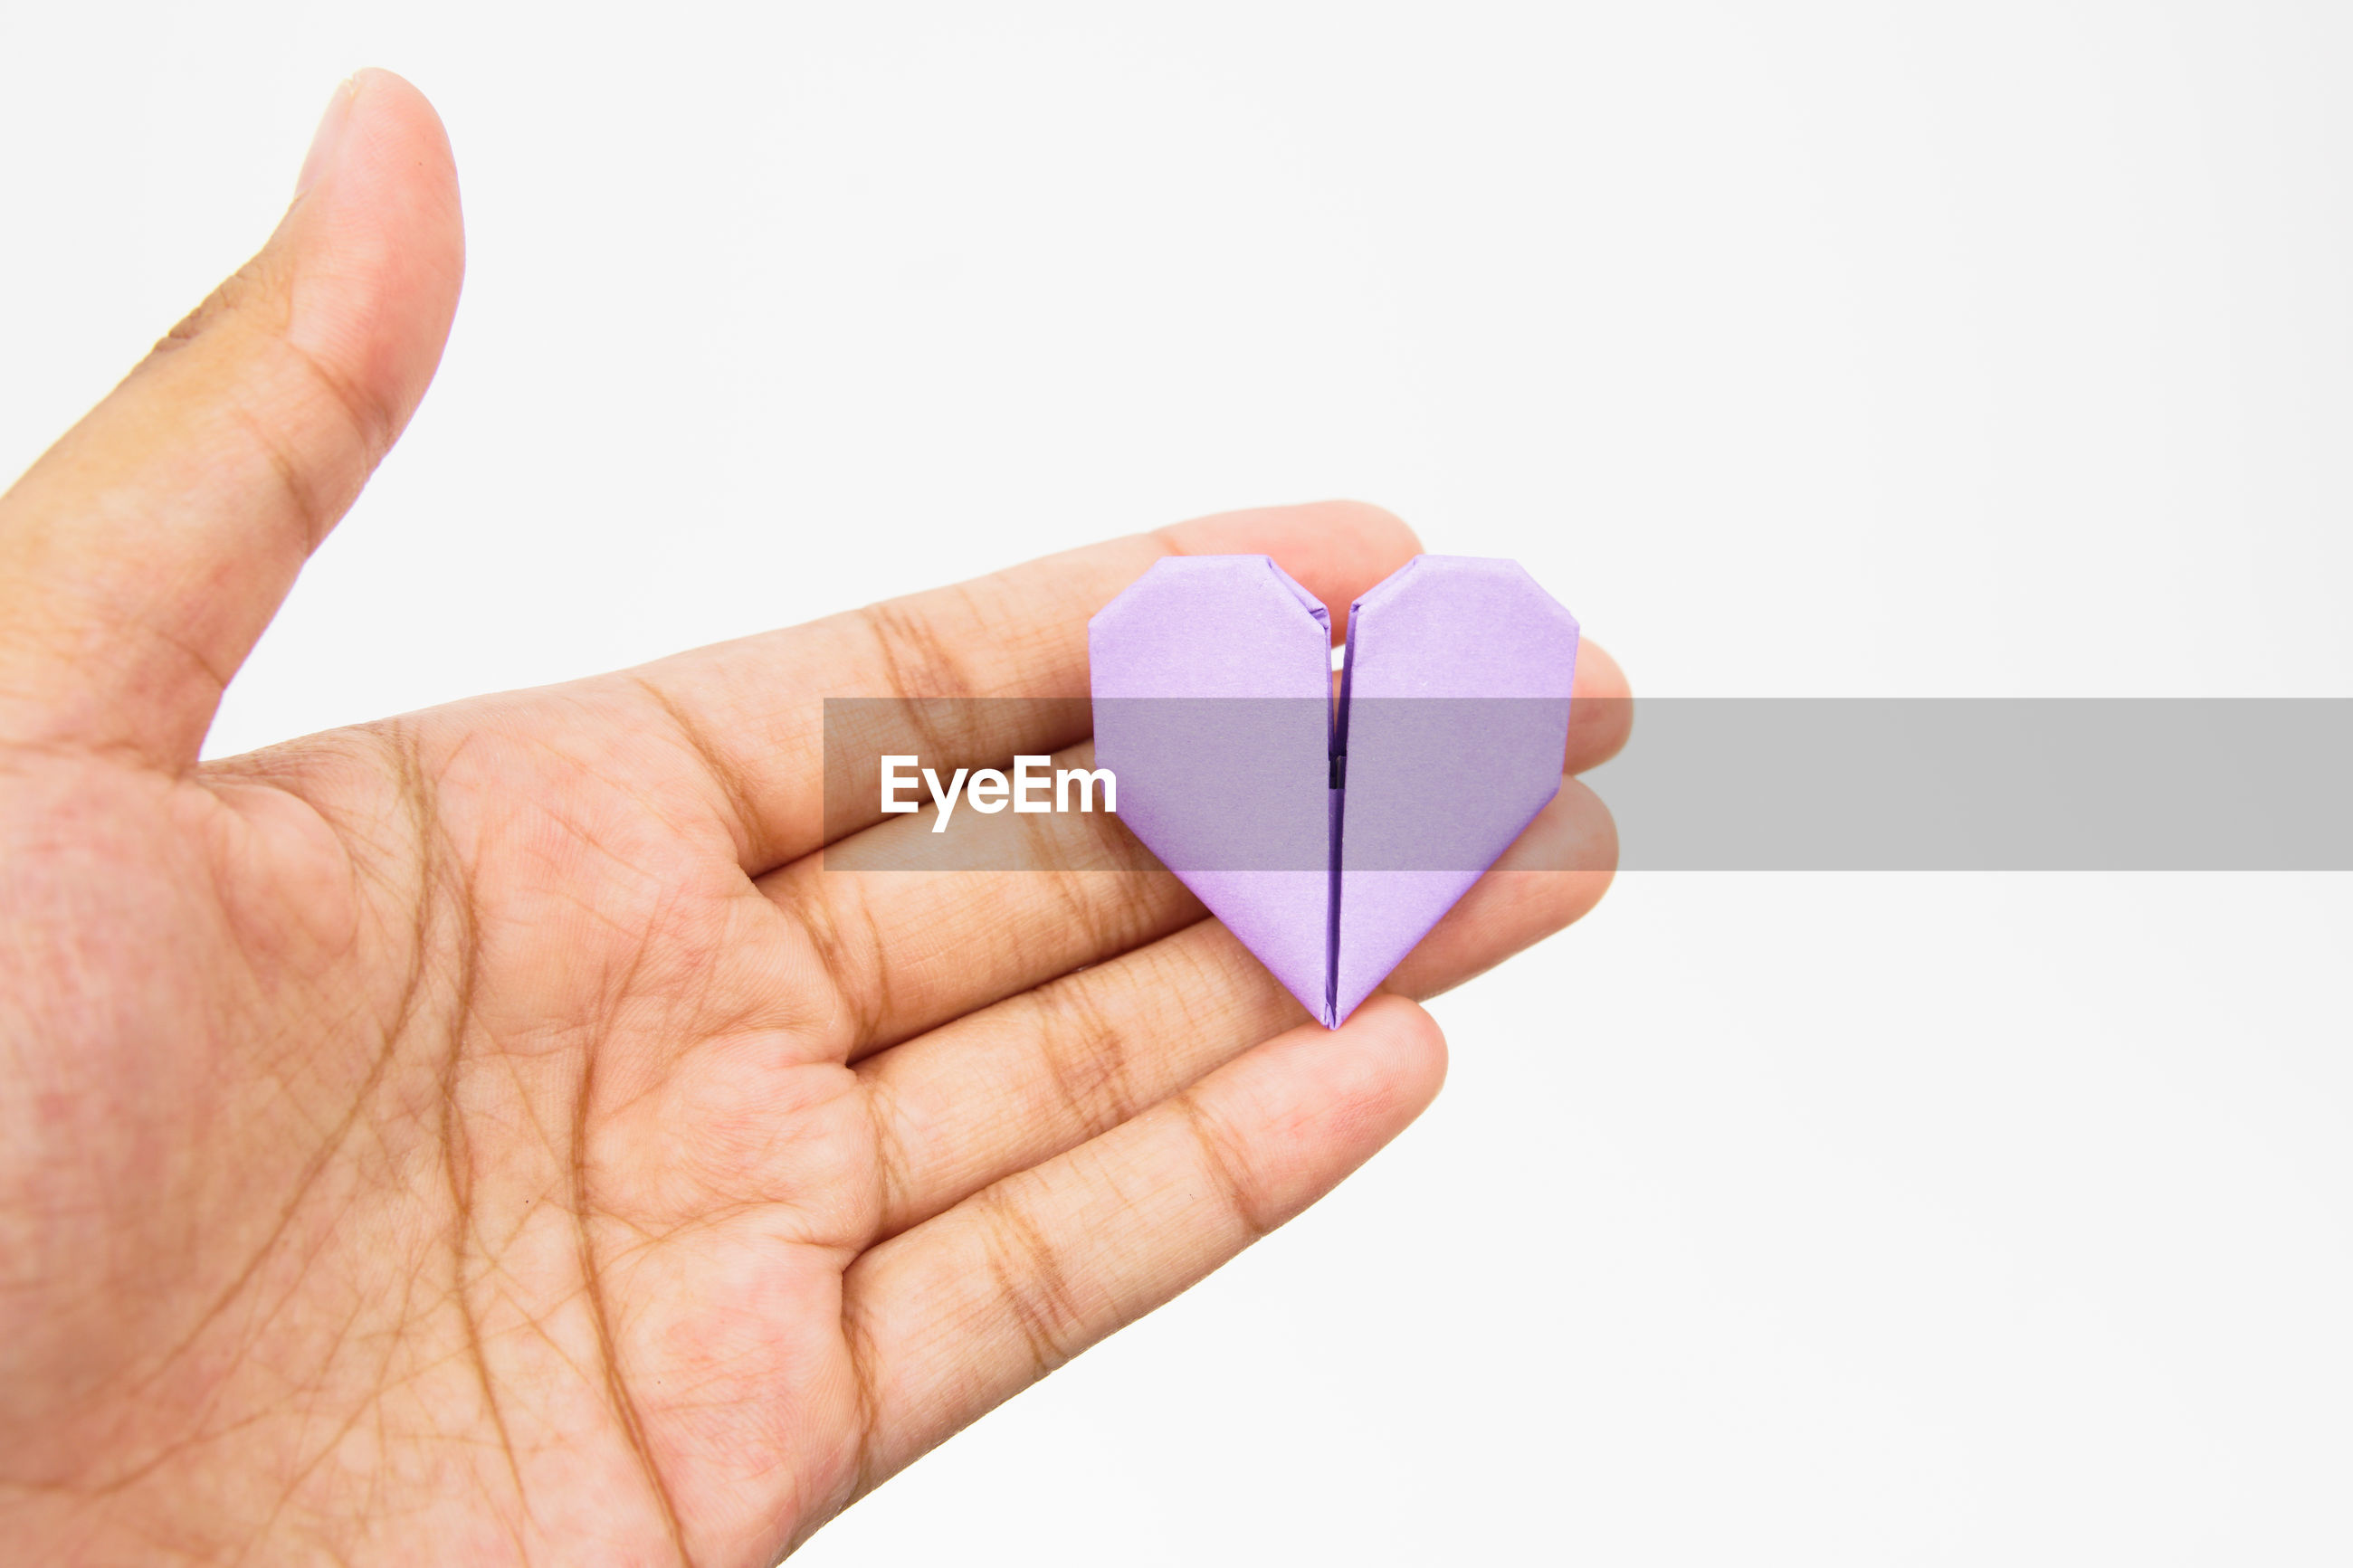 Close-up of cropped hand holding heart shape purple papers against white background